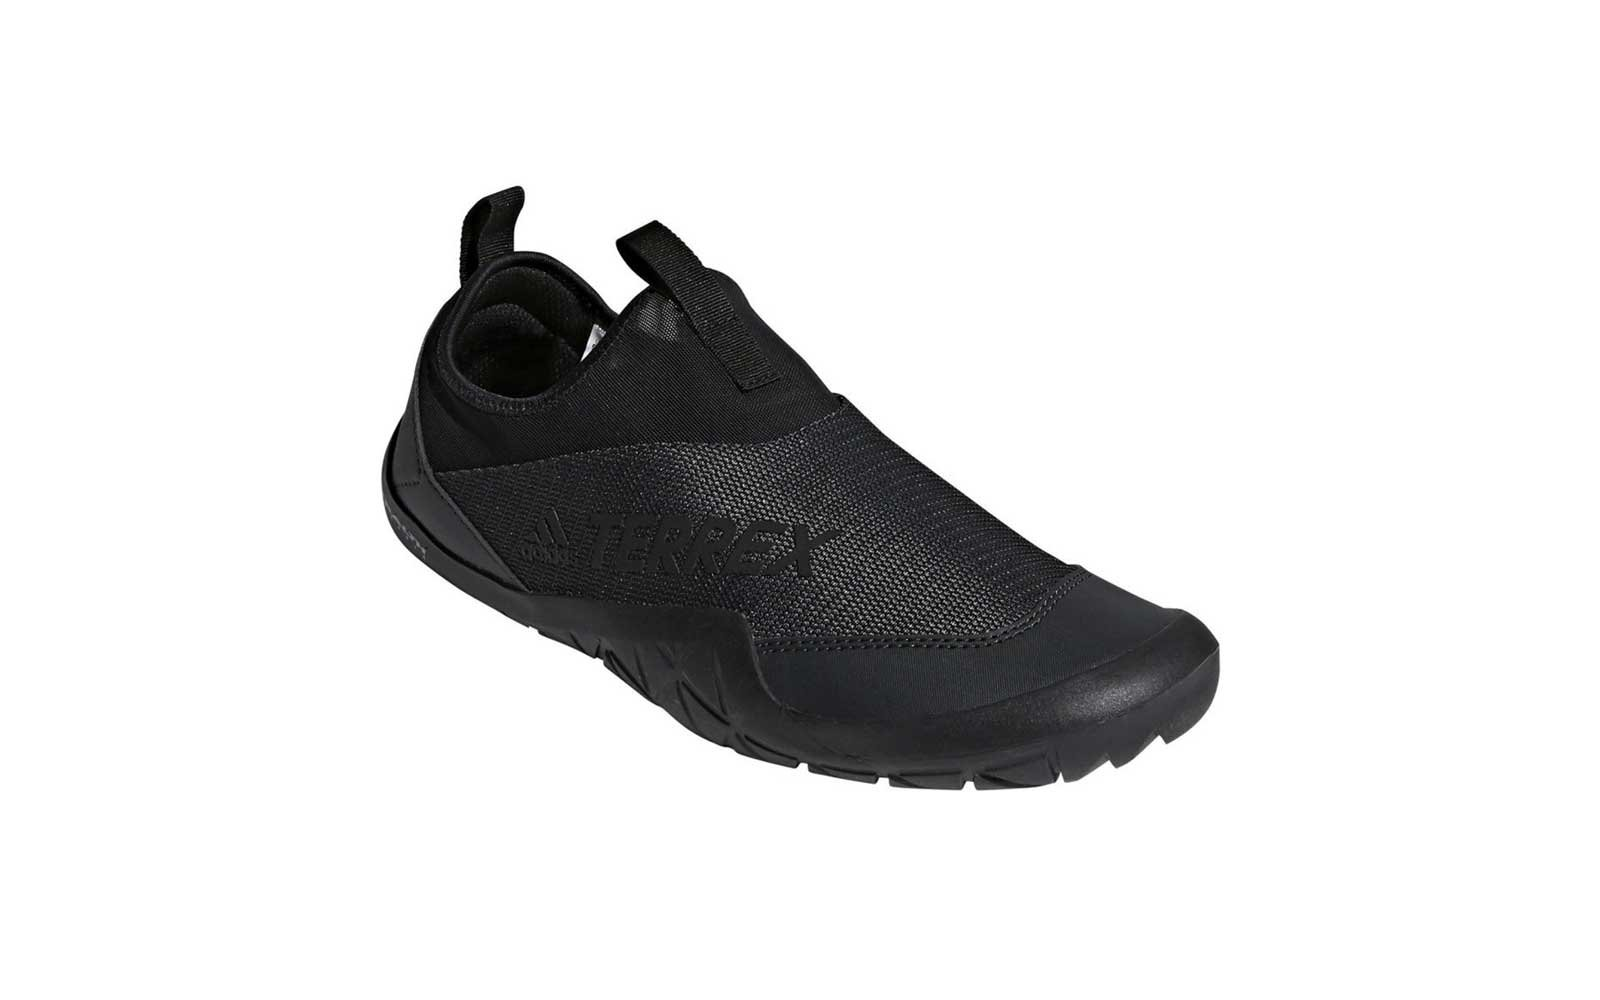 eb4f5e8d9f The Best Men s Water Shoes for 2019